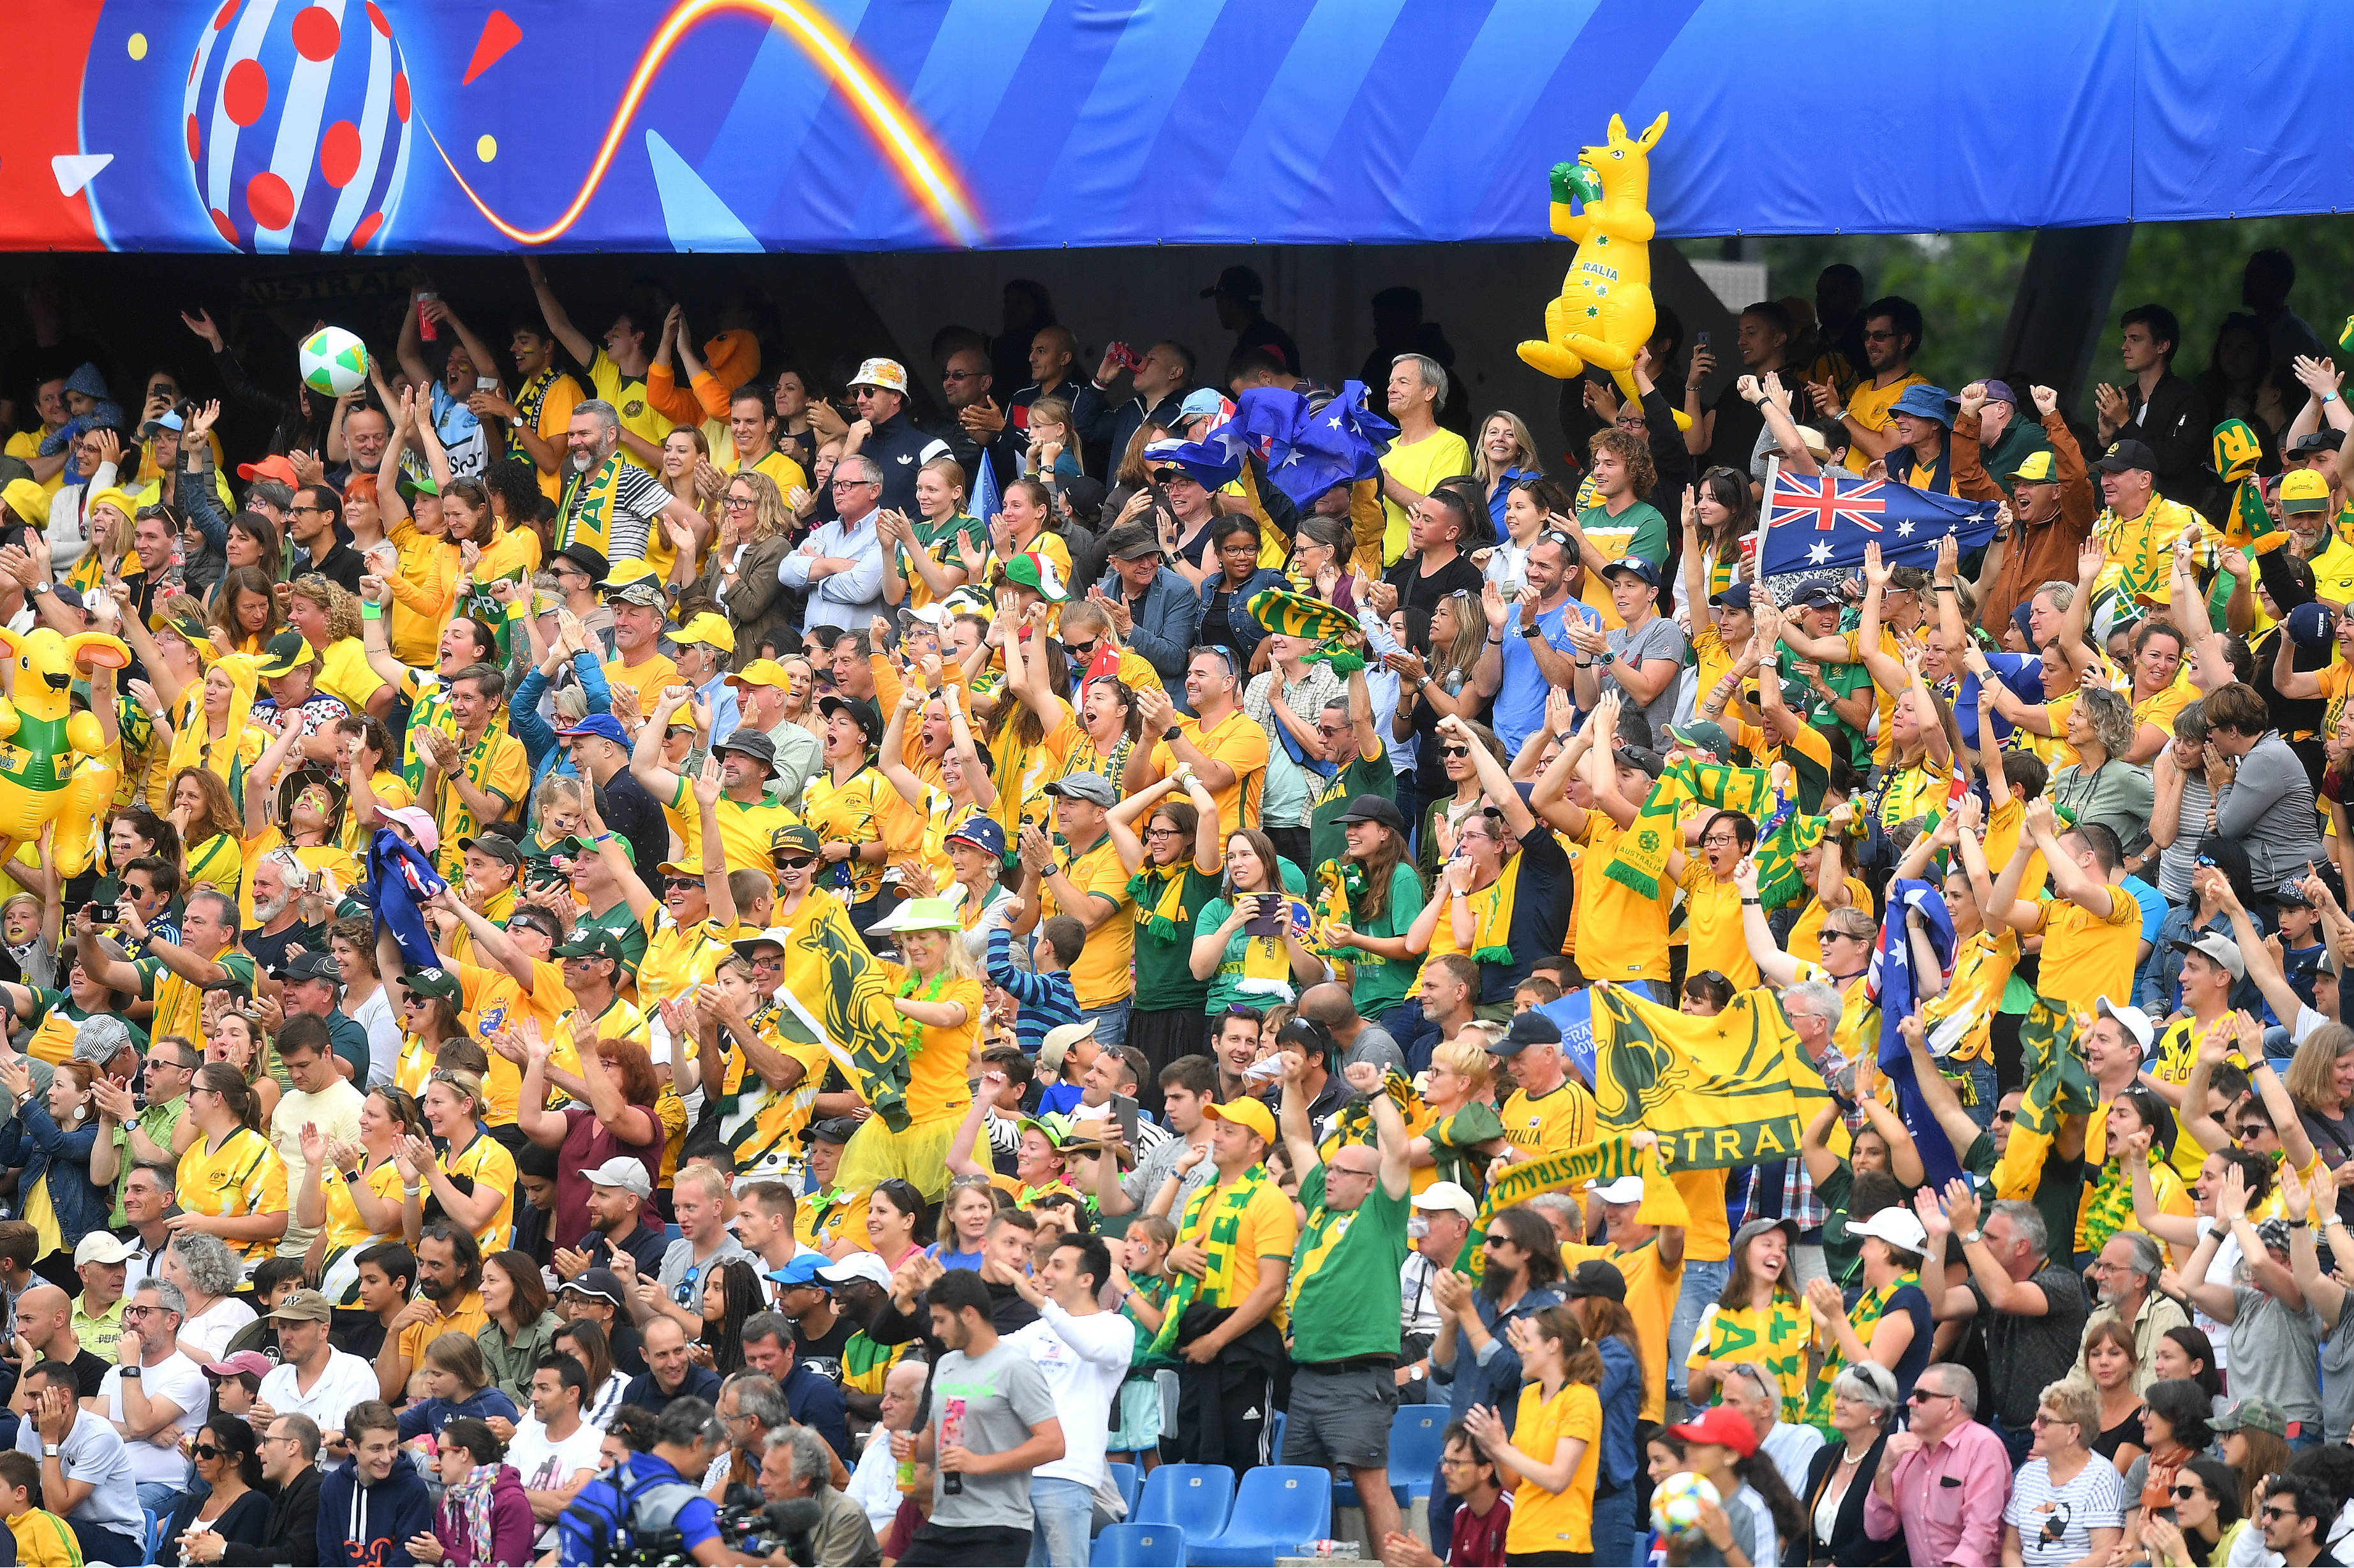 There was plenty of jubilation in the stands from Matildas fans as well